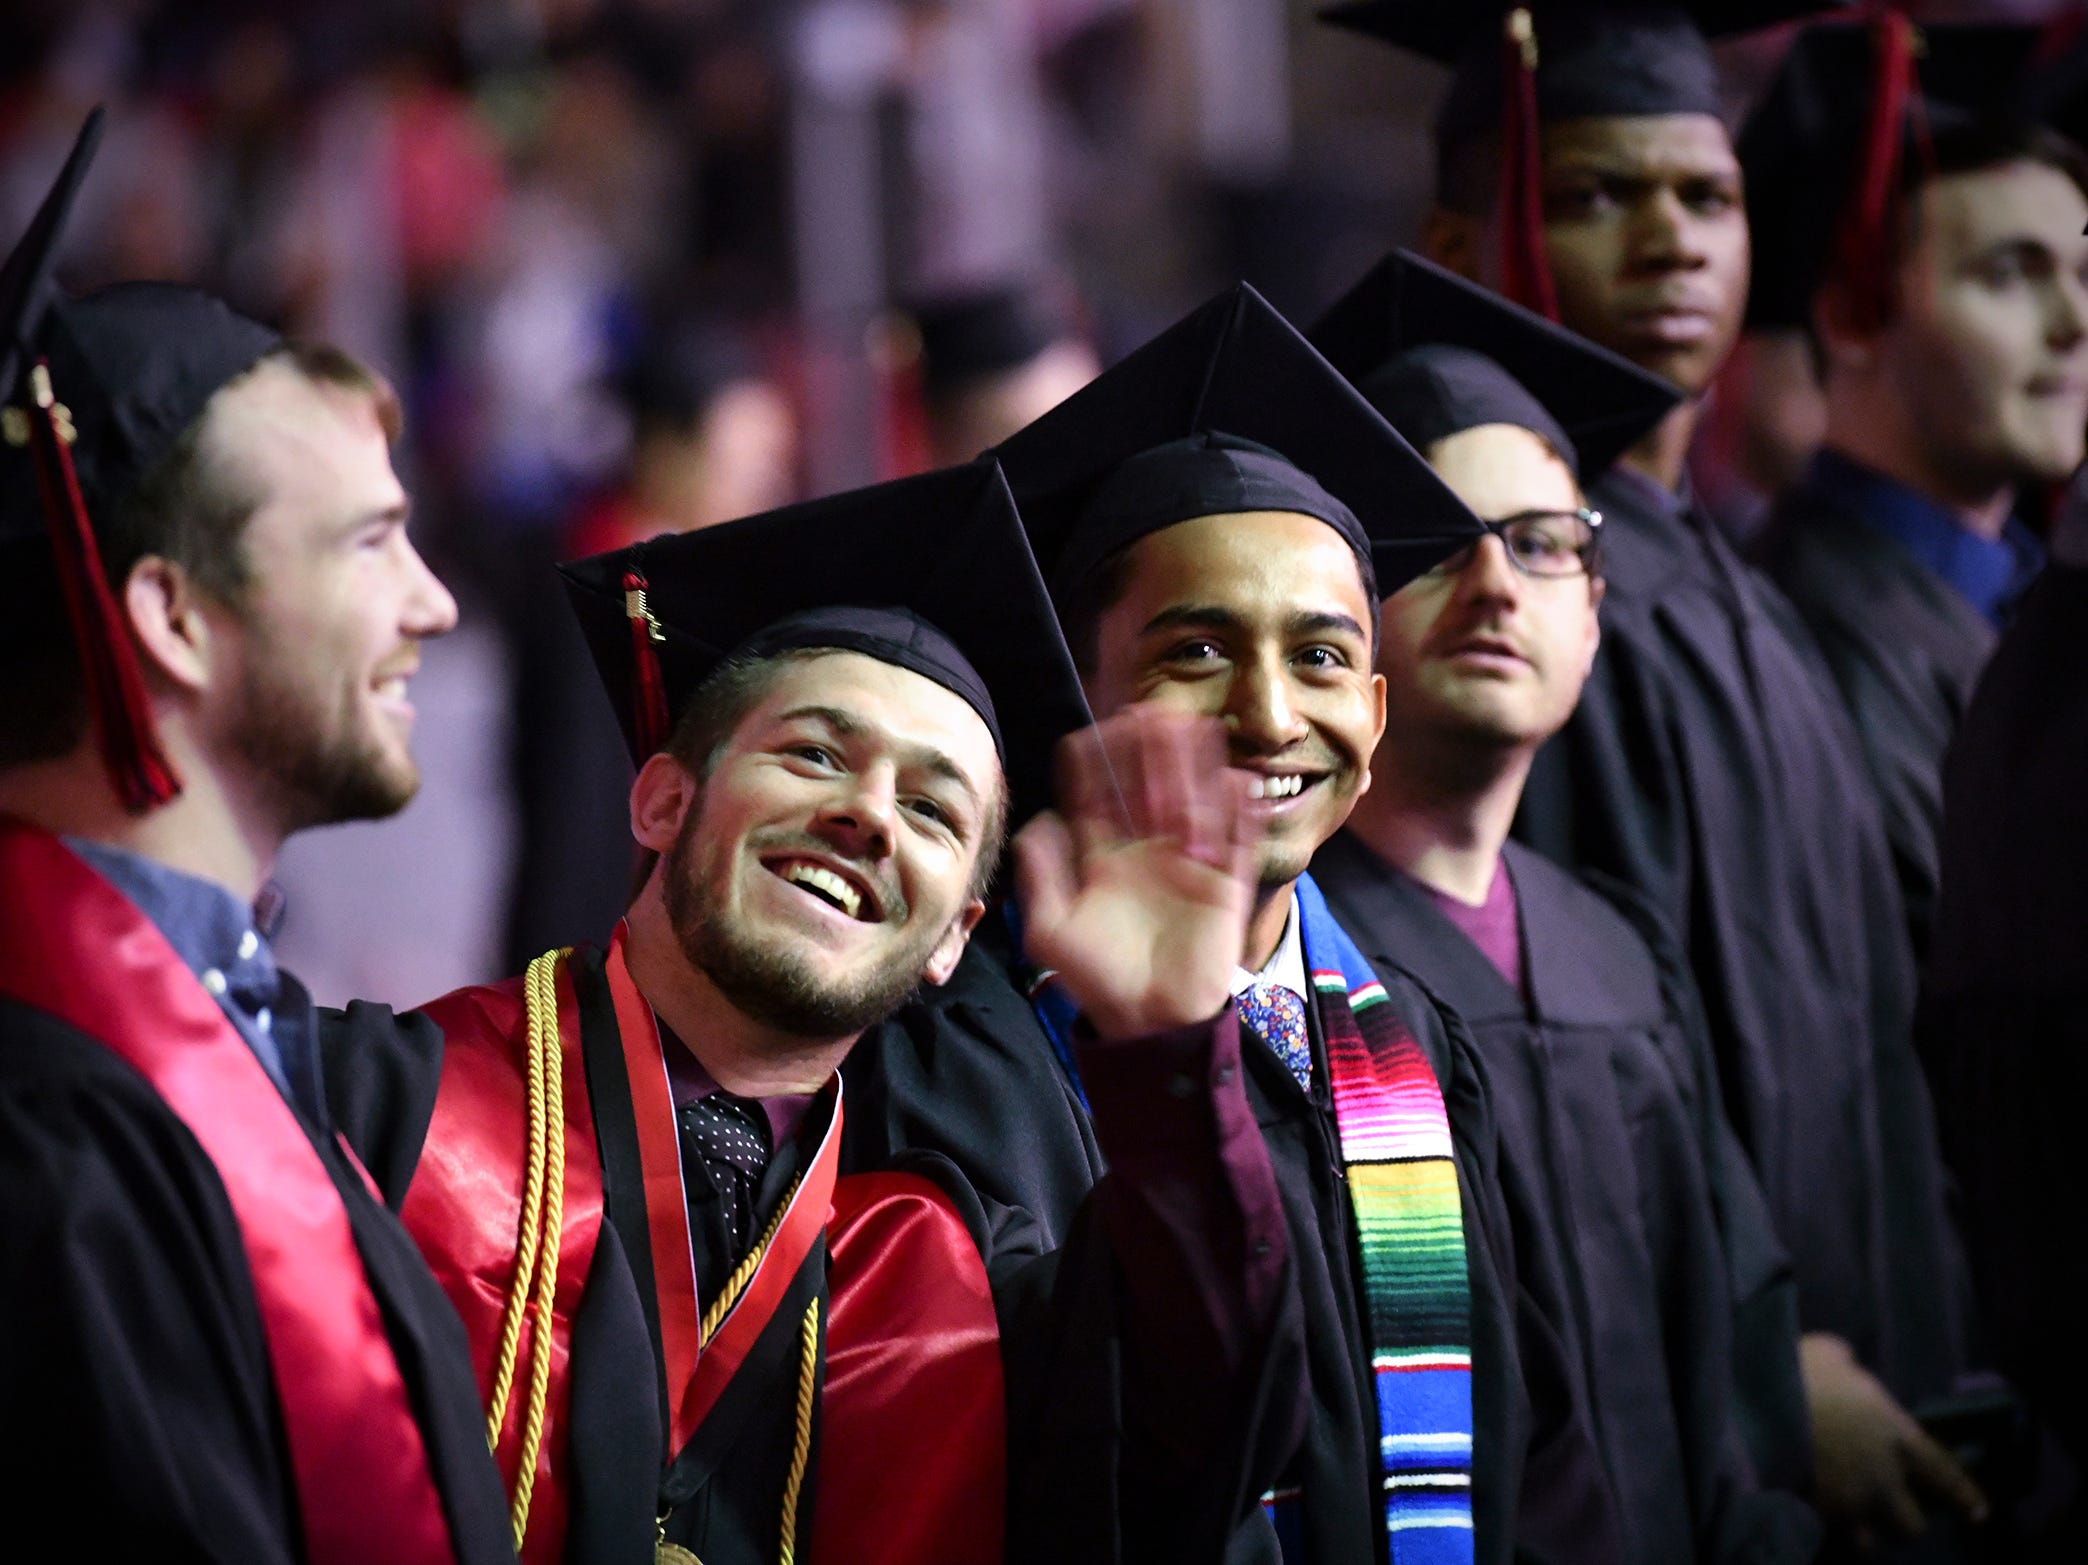 Students wave at friends and family in the audience during the morning commencement ceremony Friday, May 10, in the Herb Brooks National Hockey Center at St. Cloud State University in St. Cloud.